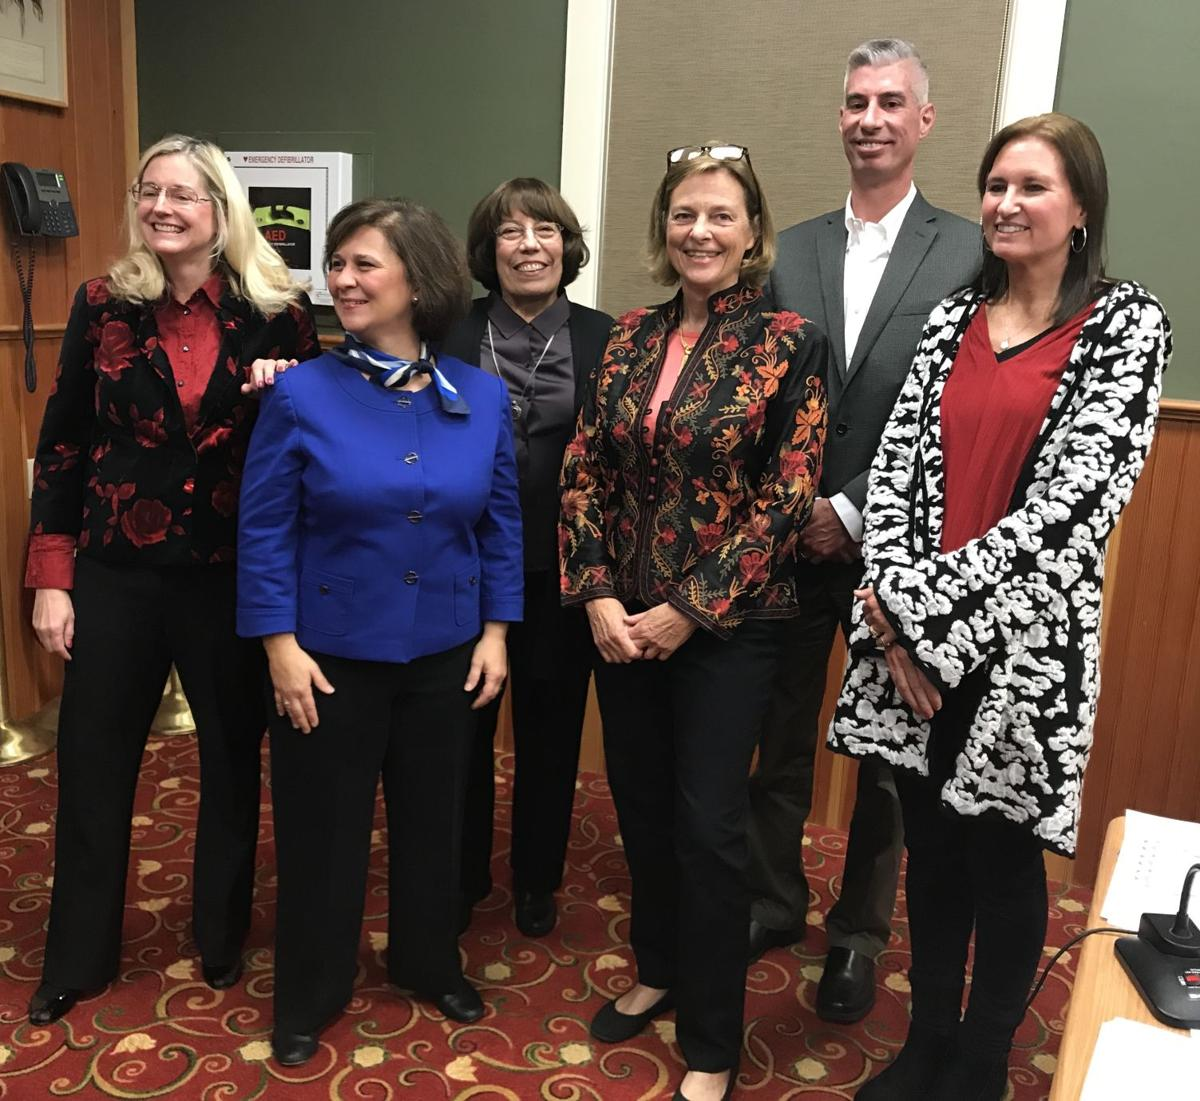 Members of the new Charlestown Town Council, following their swearing in. From left, Julie Carroccia, R.I. Secretary of State Nellie Gorbea, Bonita Van Slyke, council President Virginia Lee, David Wilkinson and council Vice President Deborah Carney. Cynthia Drummond, The Westerly Sun